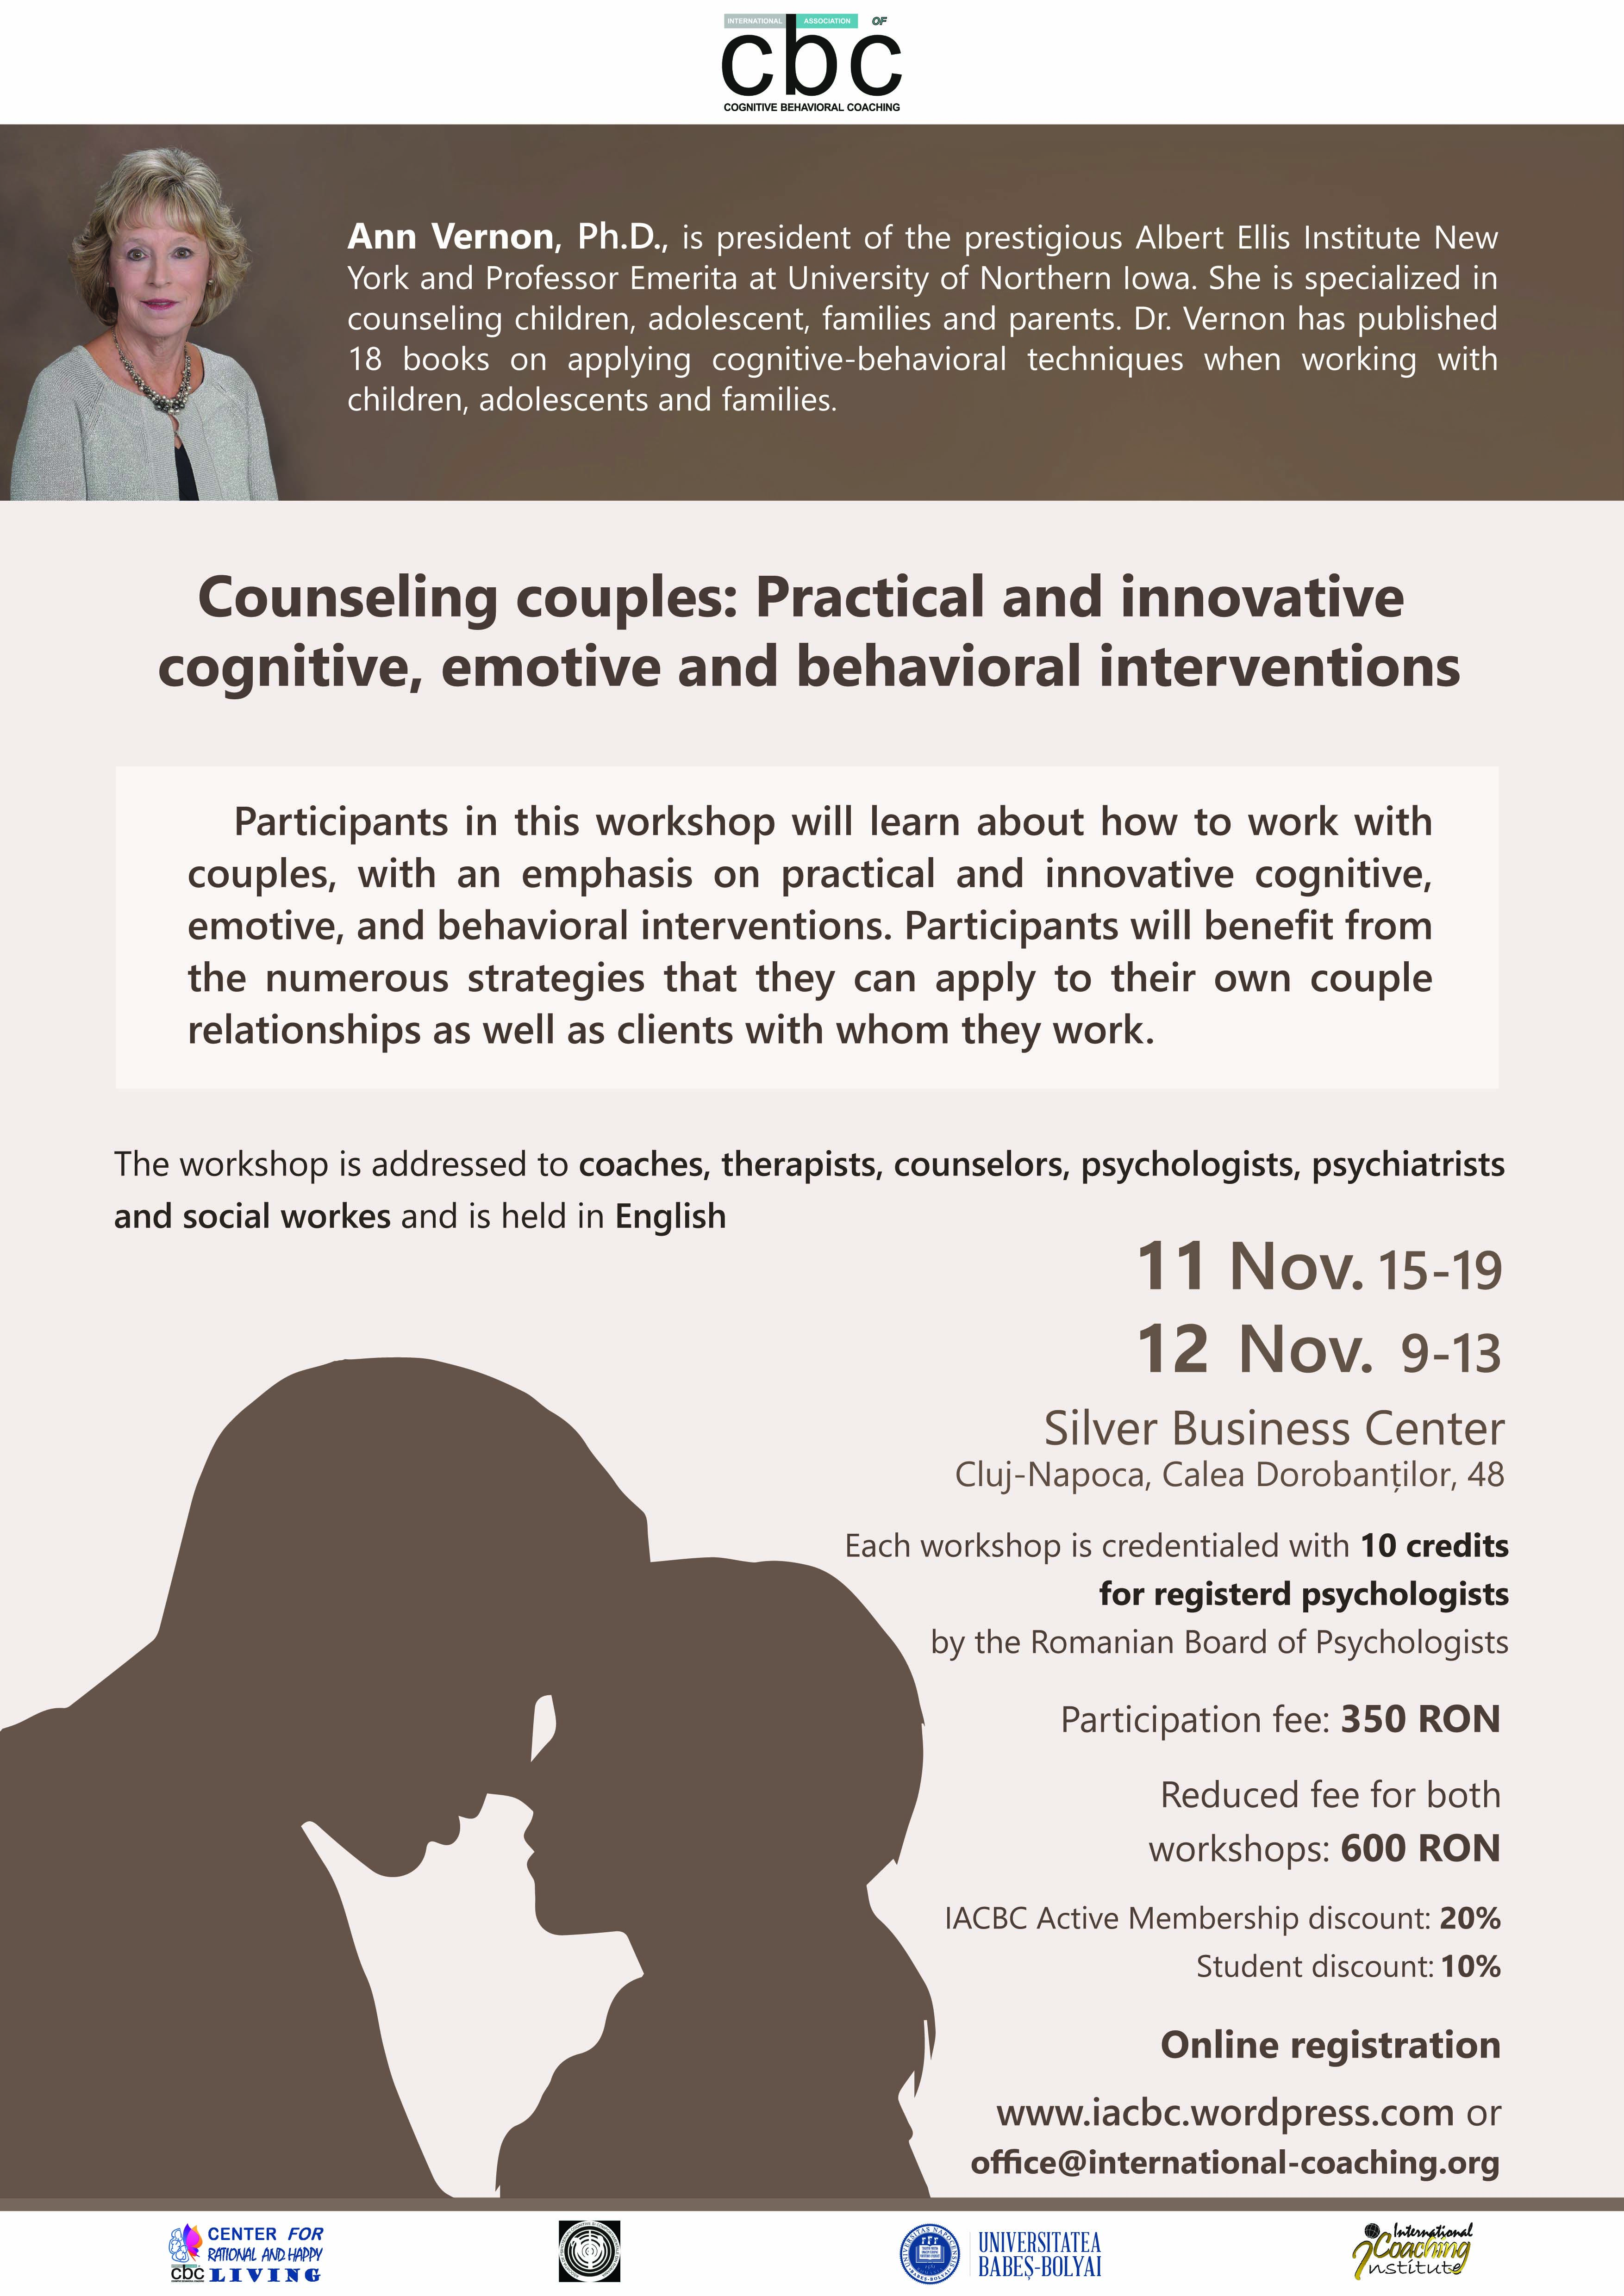 counseling-couples-cognitive-emotive-bahavioral-interventions